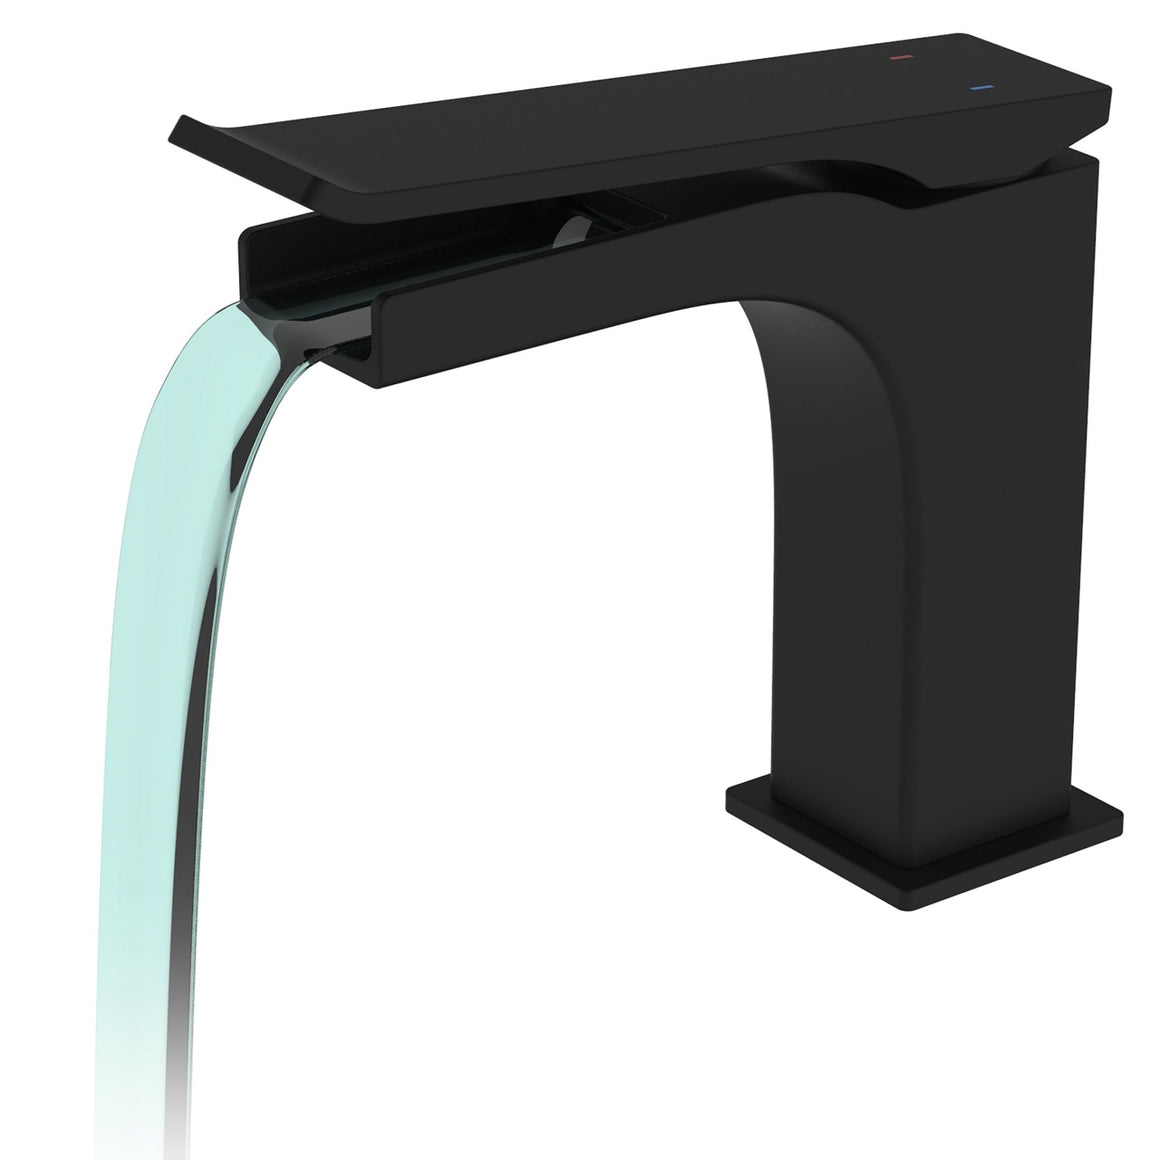 Cascata Single Lever Bathroom Vanity Faucet – Matte Black